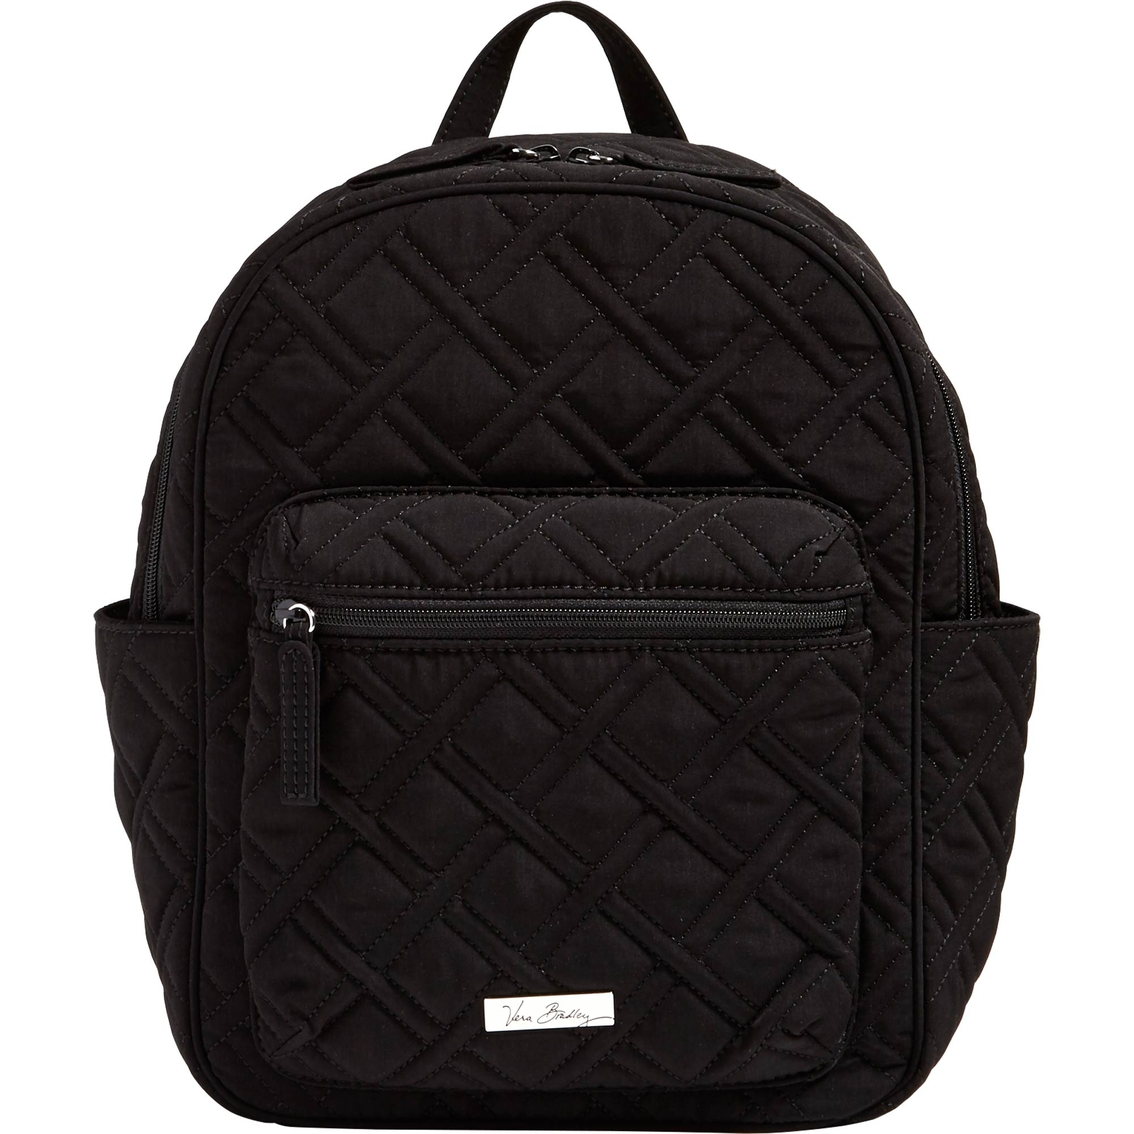 f4769c1aa398 Vera Bradley Leighton Backpack, Classic Black | Shop By Pattern ...